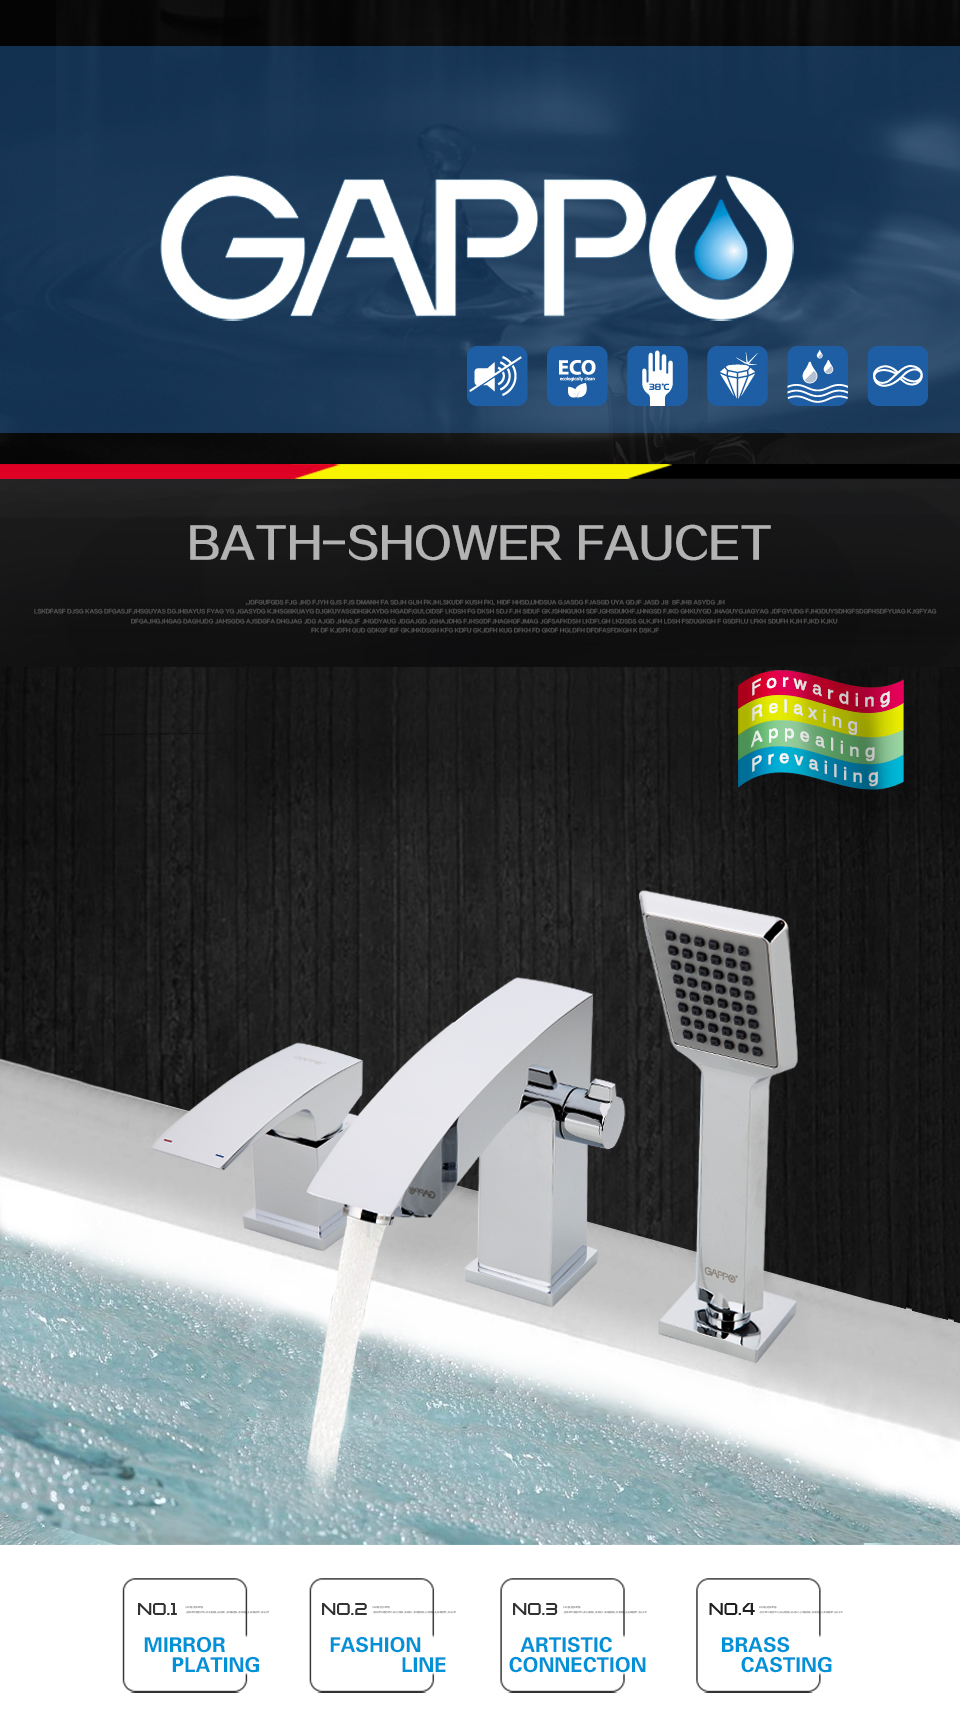 GAPPO bathroom shower faucet Bathtub Faucet tap bath shower shower set waterfall bathtub sink faucet water mixer sink taps G1107